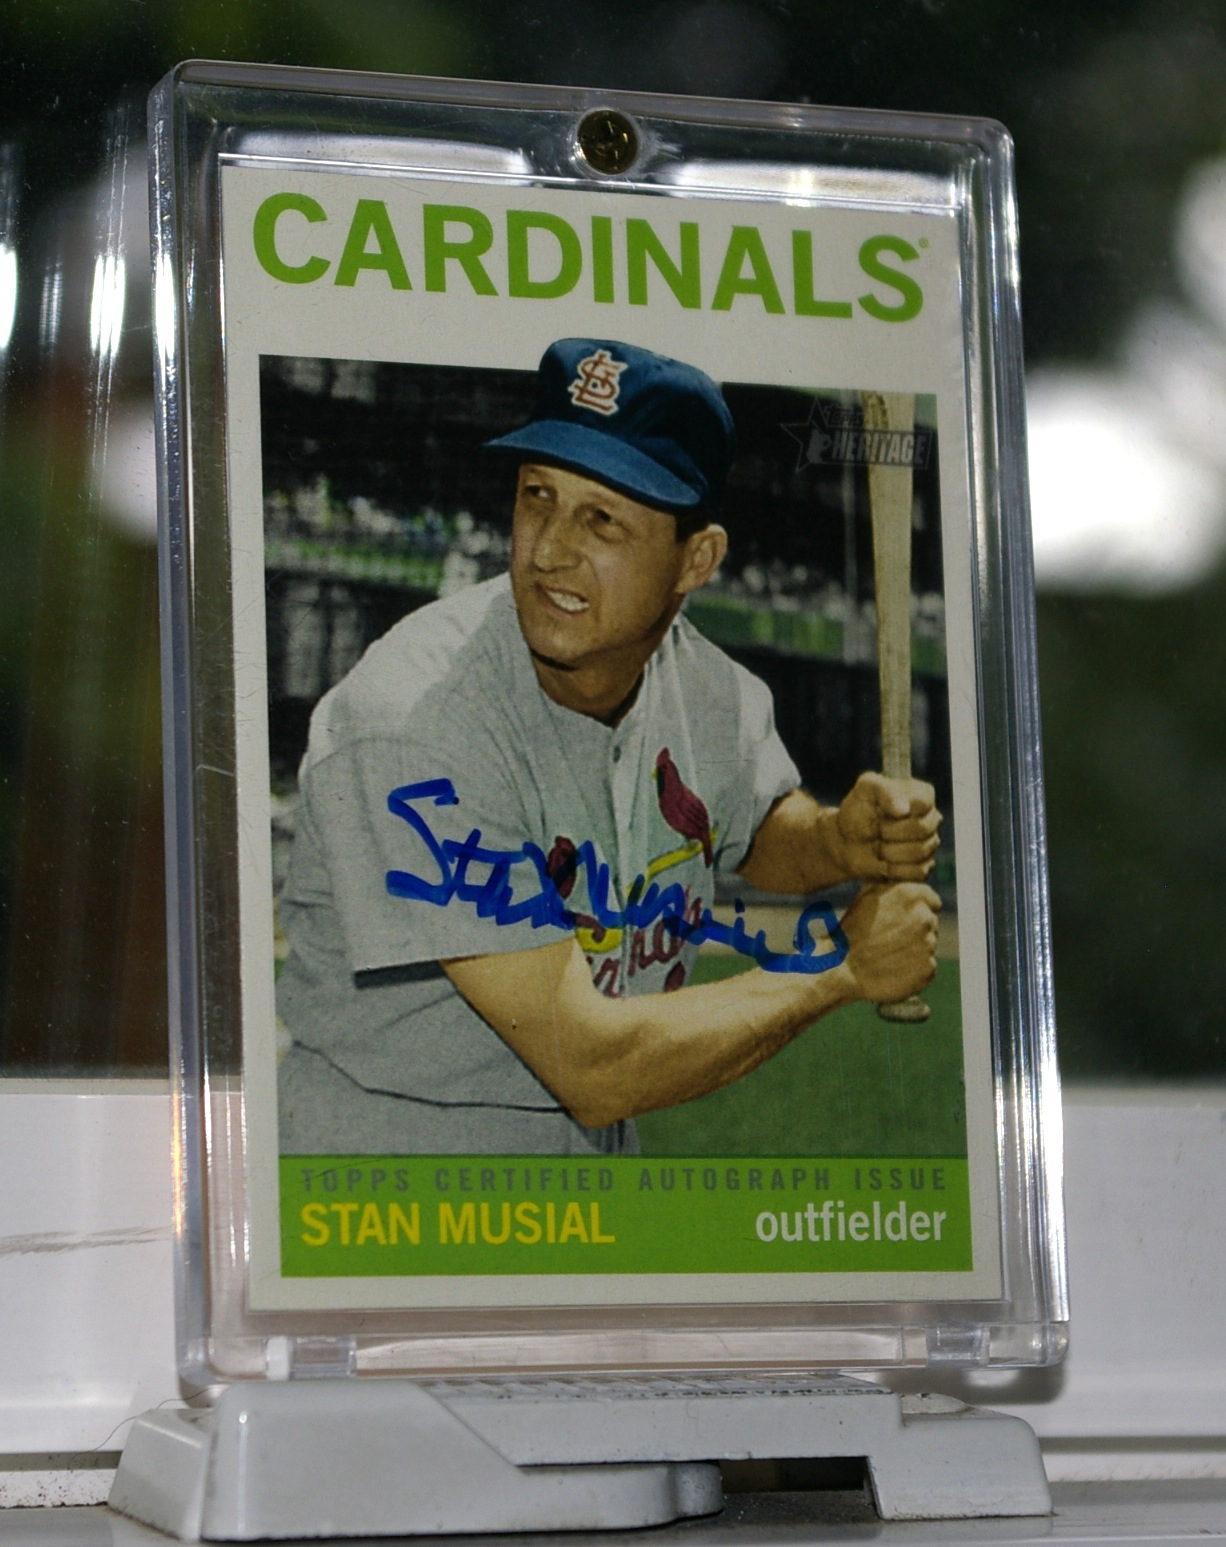 Stan Musial (1920 - 2013)